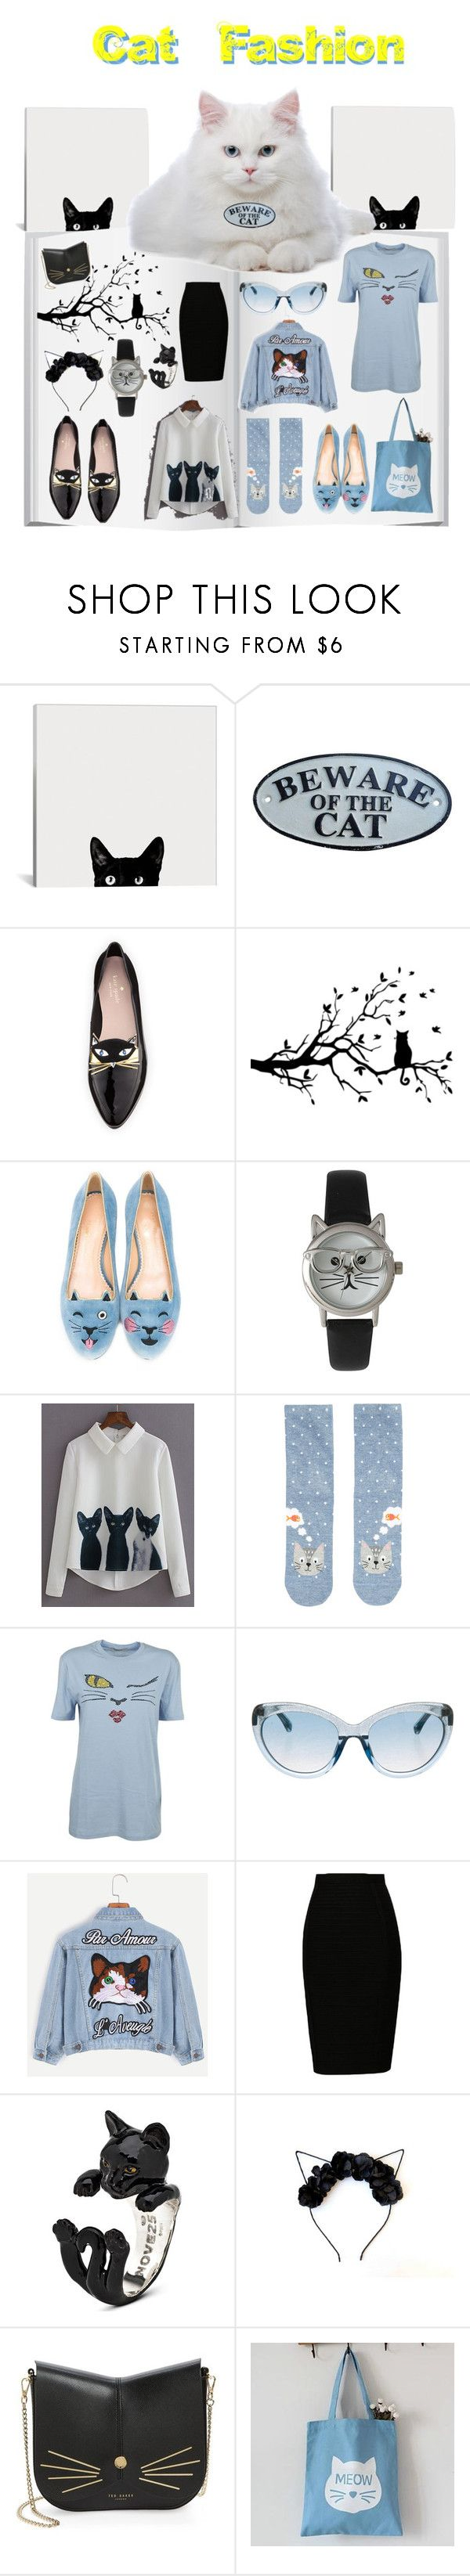 """Cat Look Book"" by sarahcanavan ❤ liked on Polyvore featuring Kate Spade, Charlotte Olympia, Olivia Pratt, WithChic, Accessorize, Ermanno Scervino, Linda Farrow, Ted Baker and Ms Bean"